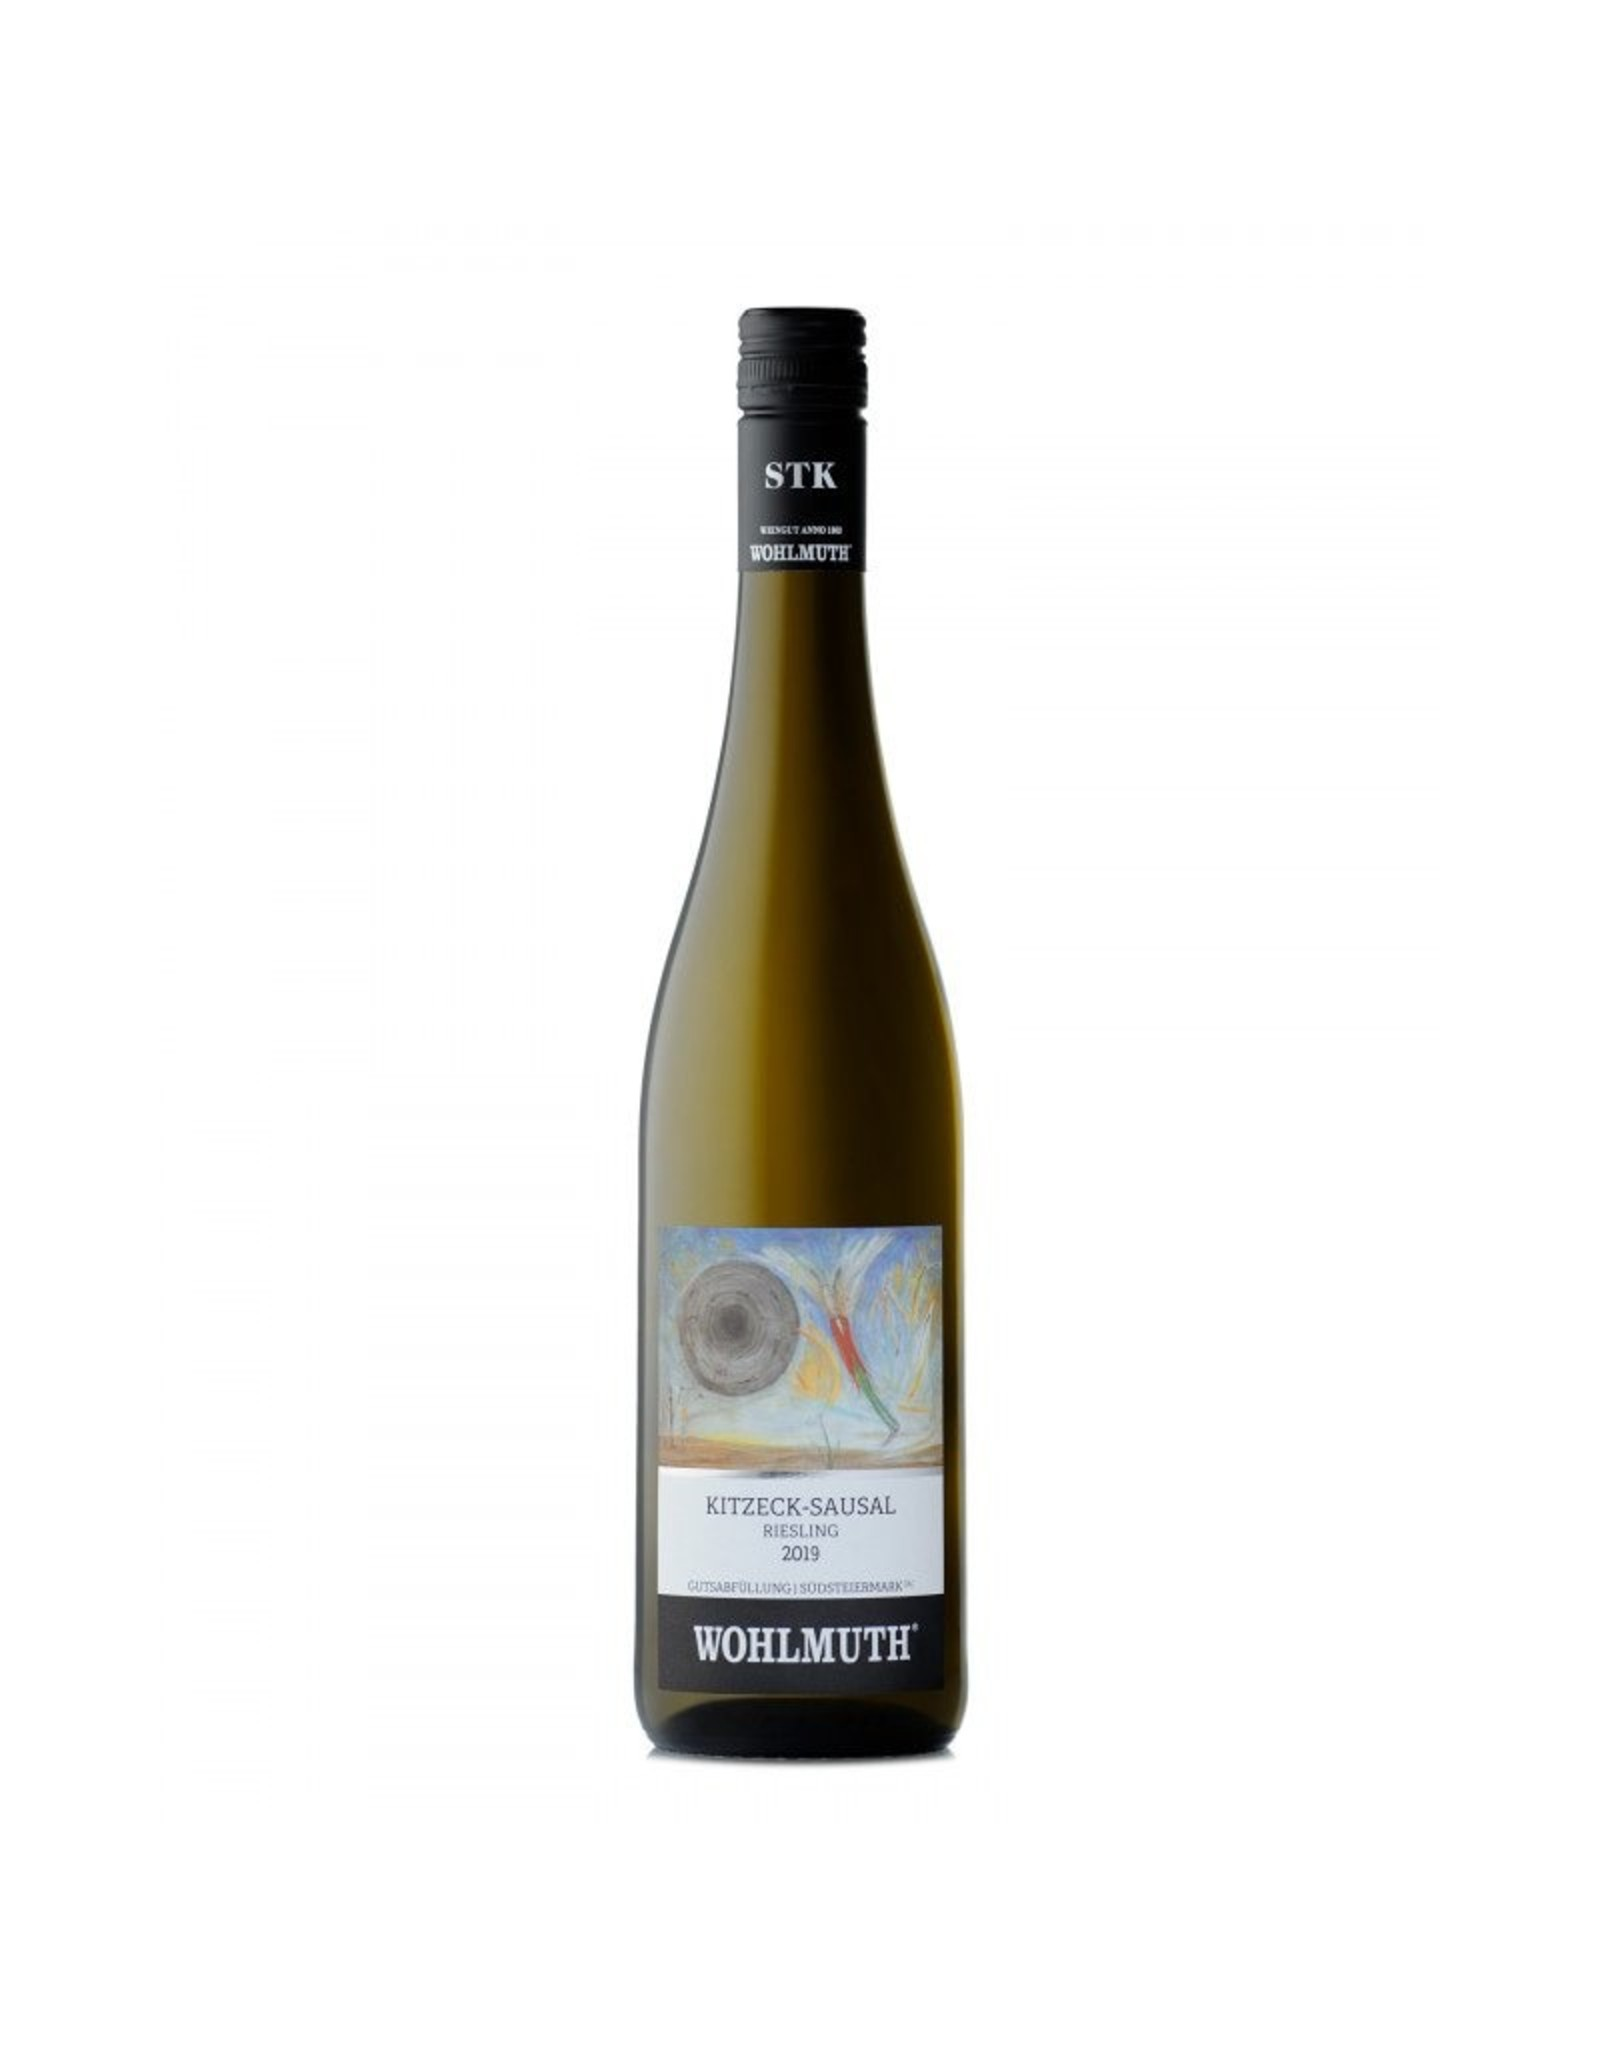 Proef Wohlmuth Riesling Kitzeck-Sausal